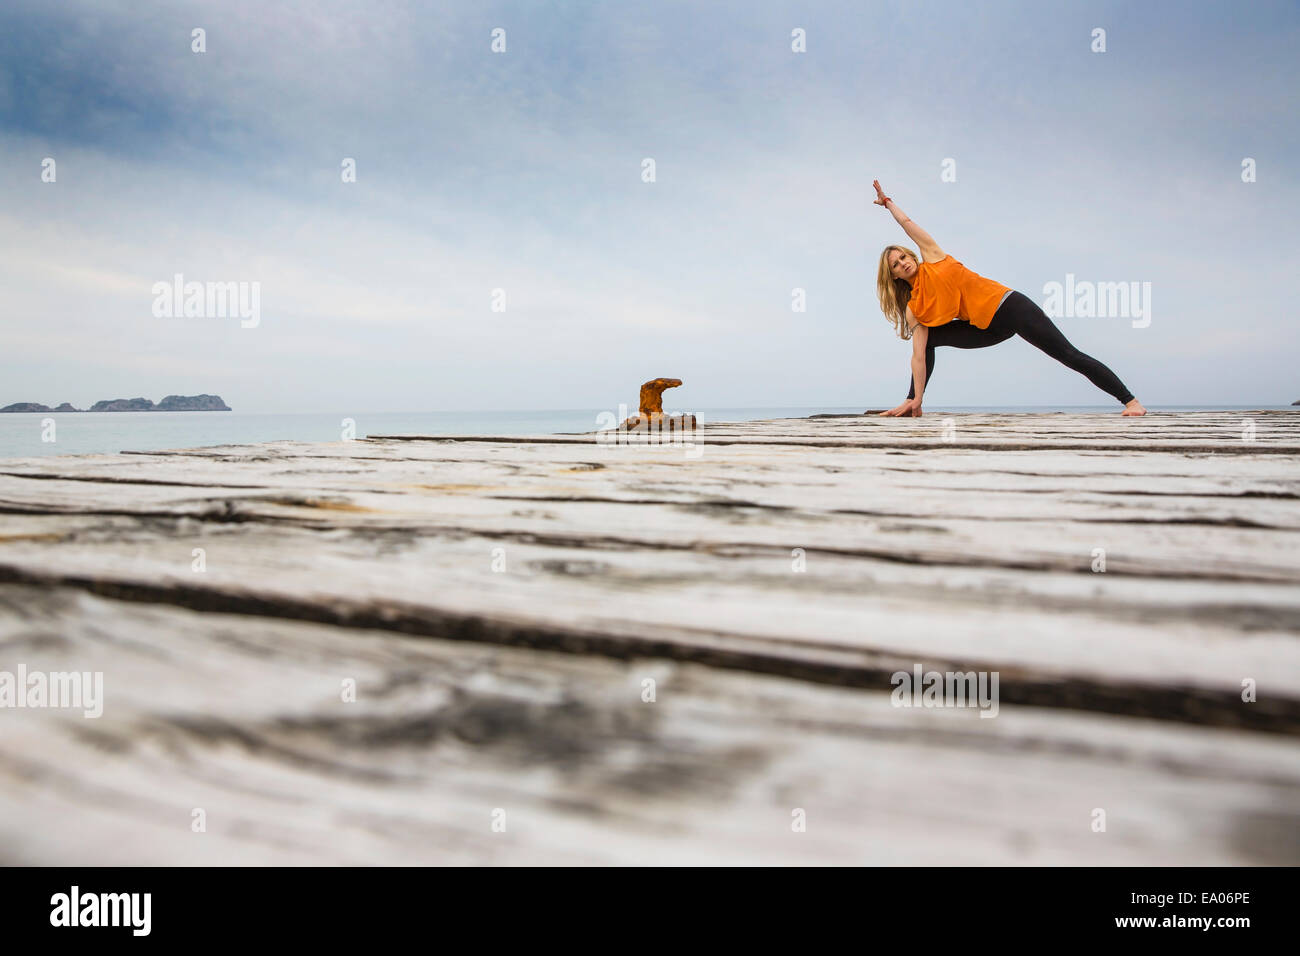 Mid adult woman practicing yoga position on wooden sea pier - Stock Image